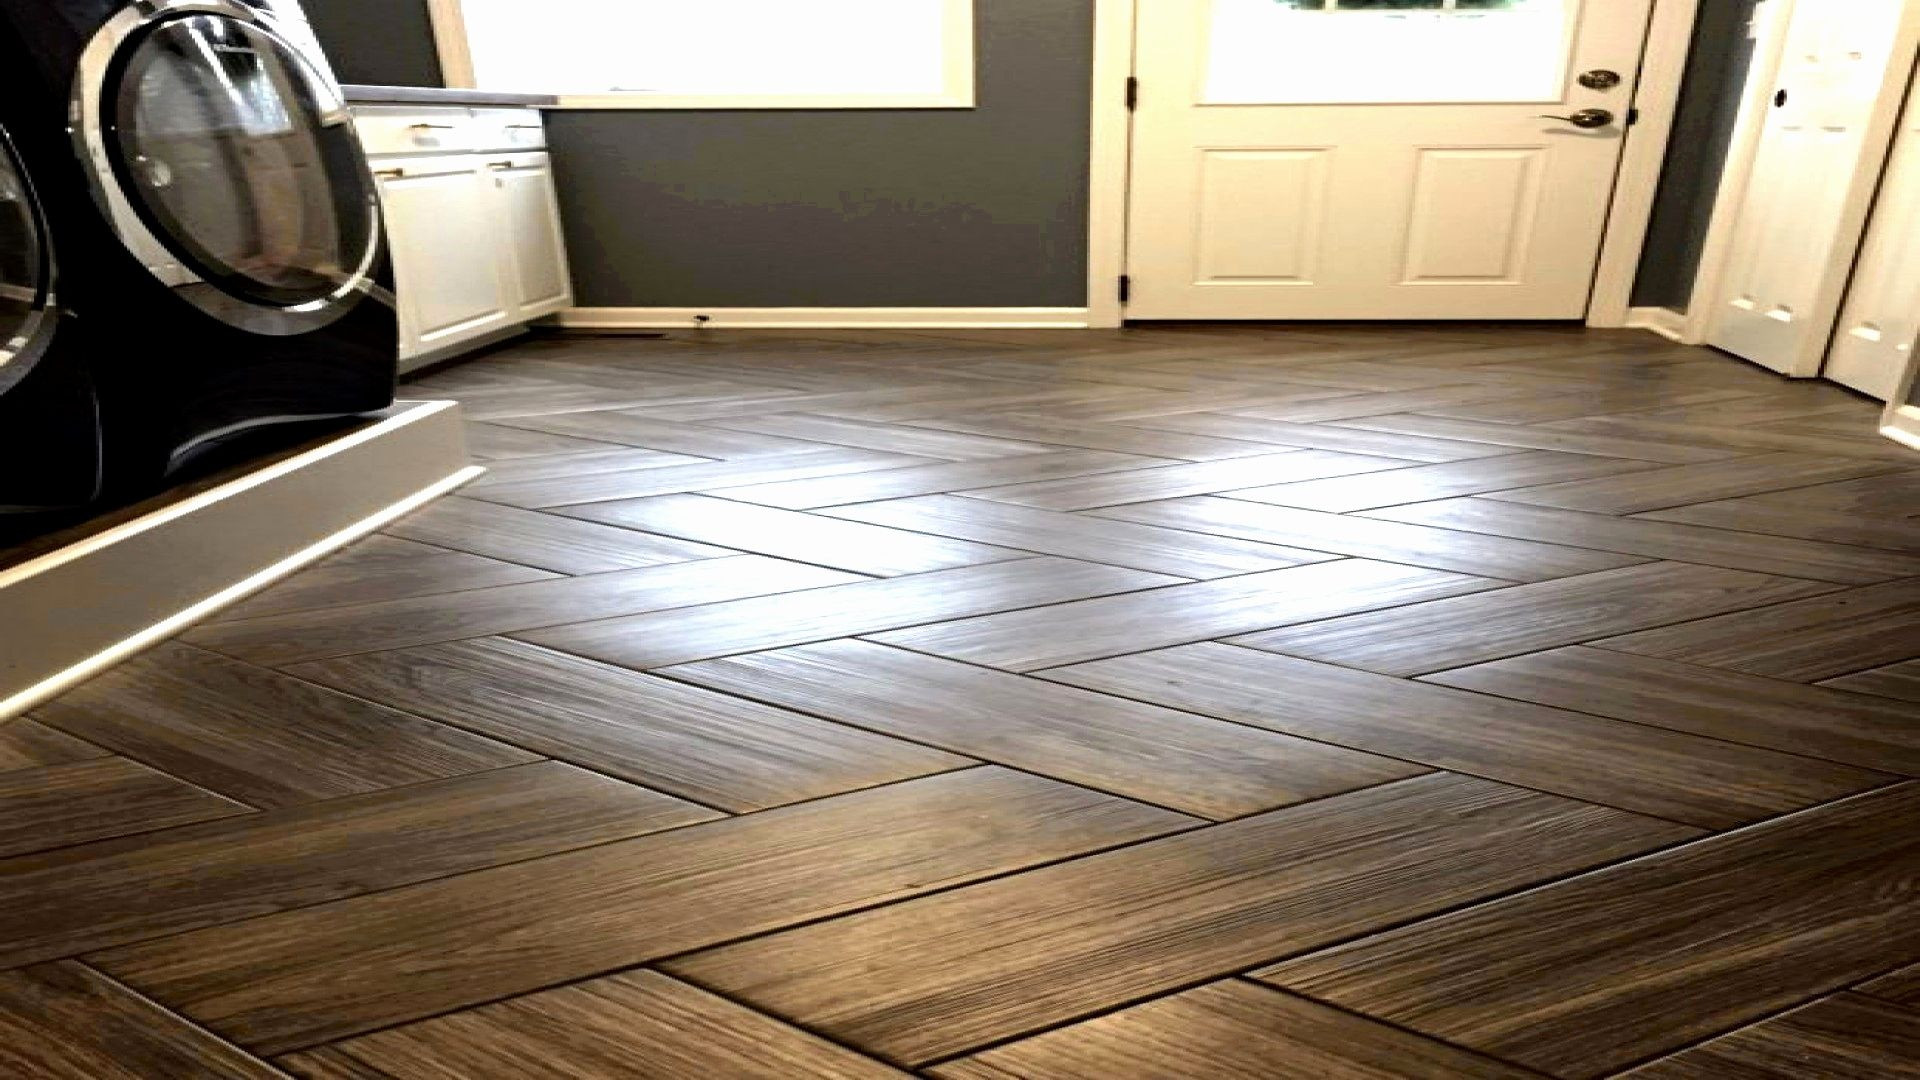 laminate hardwood flooring pros and cons of beautiful laminate flooring in bathrooms pros and cons greatest intended for kitchen floor tiles home depot elegant s media cache ak0 pinimg 736x 43 0d 97 best